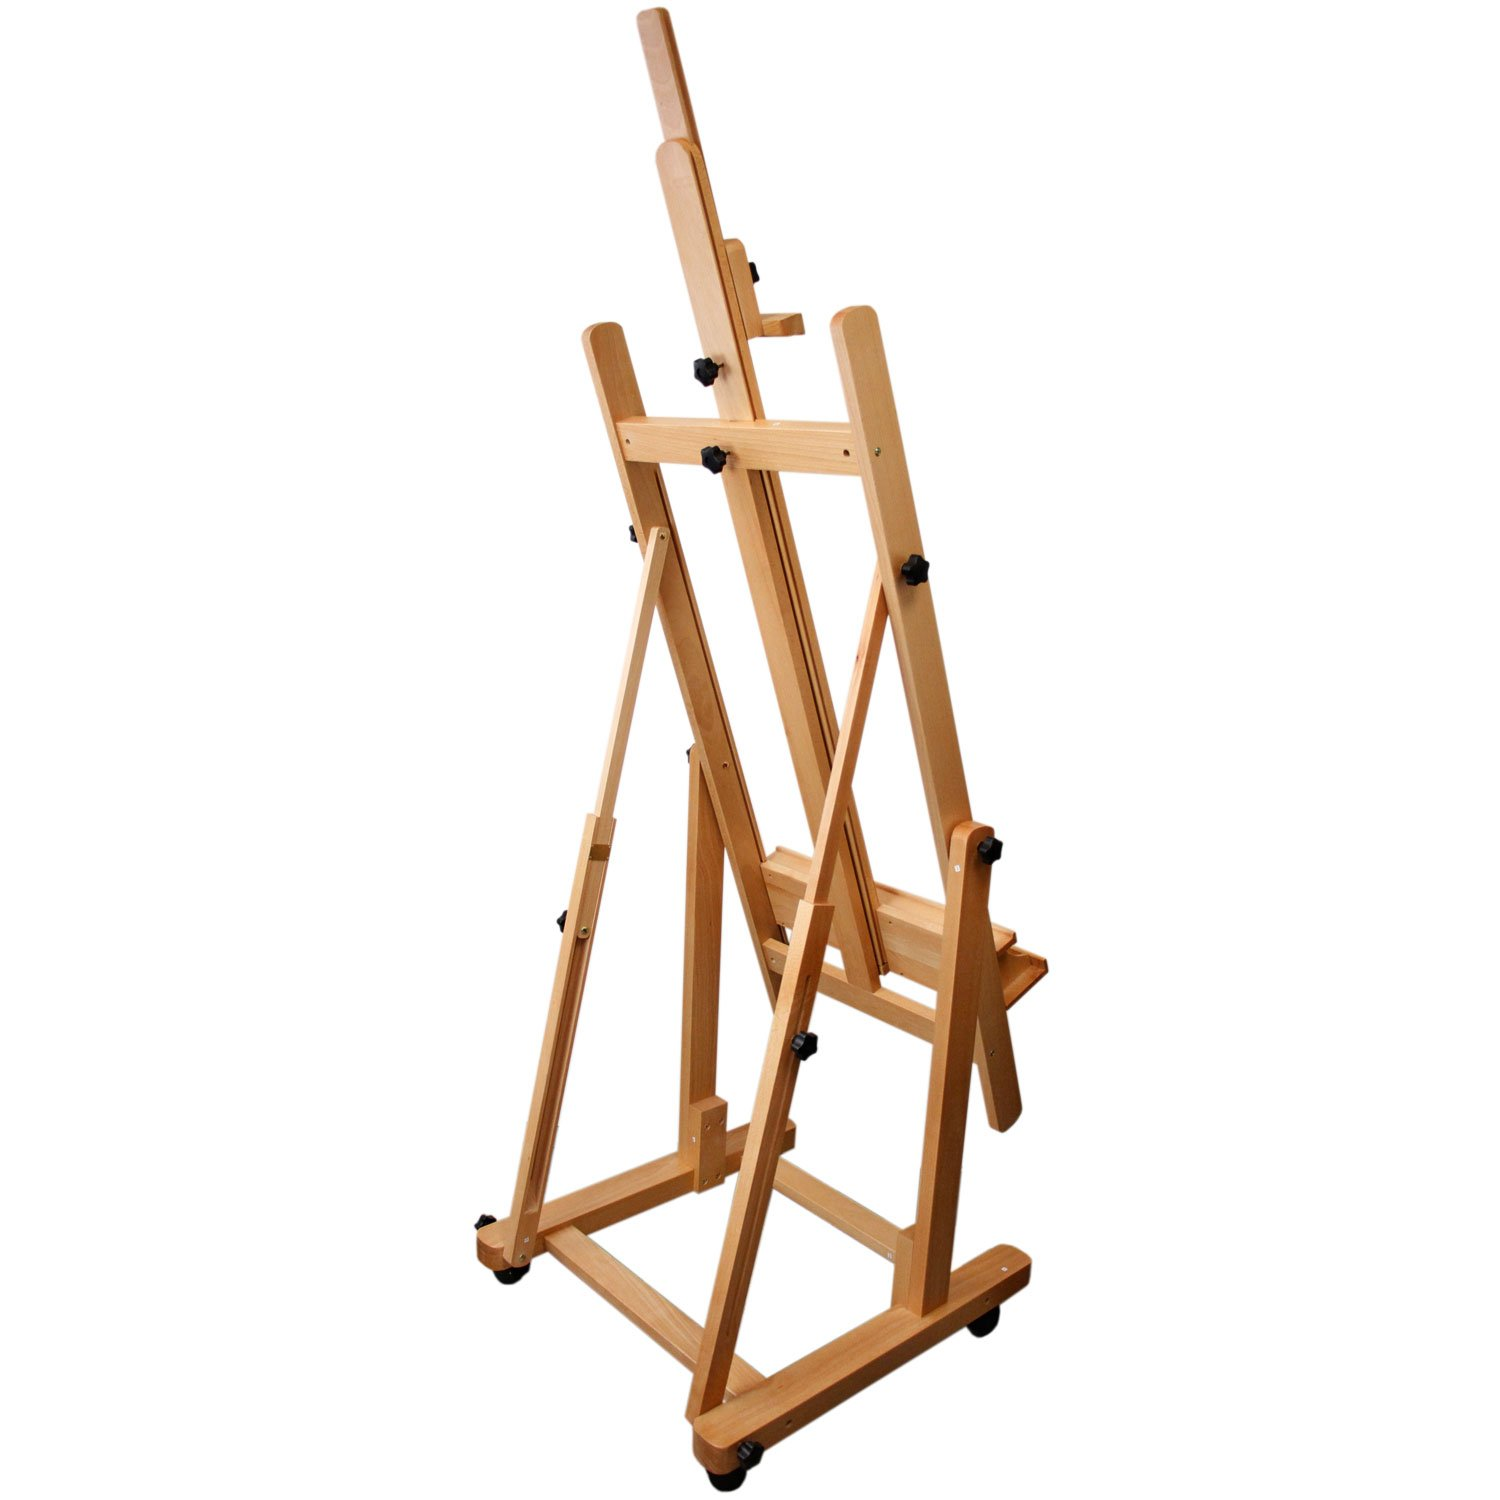 US Art Supply Malibu Extra Large H-Frame Deluxe Adjustable Wood Studio Easel with Tilt and Caster Wheels by US Art Supply (Image #3)